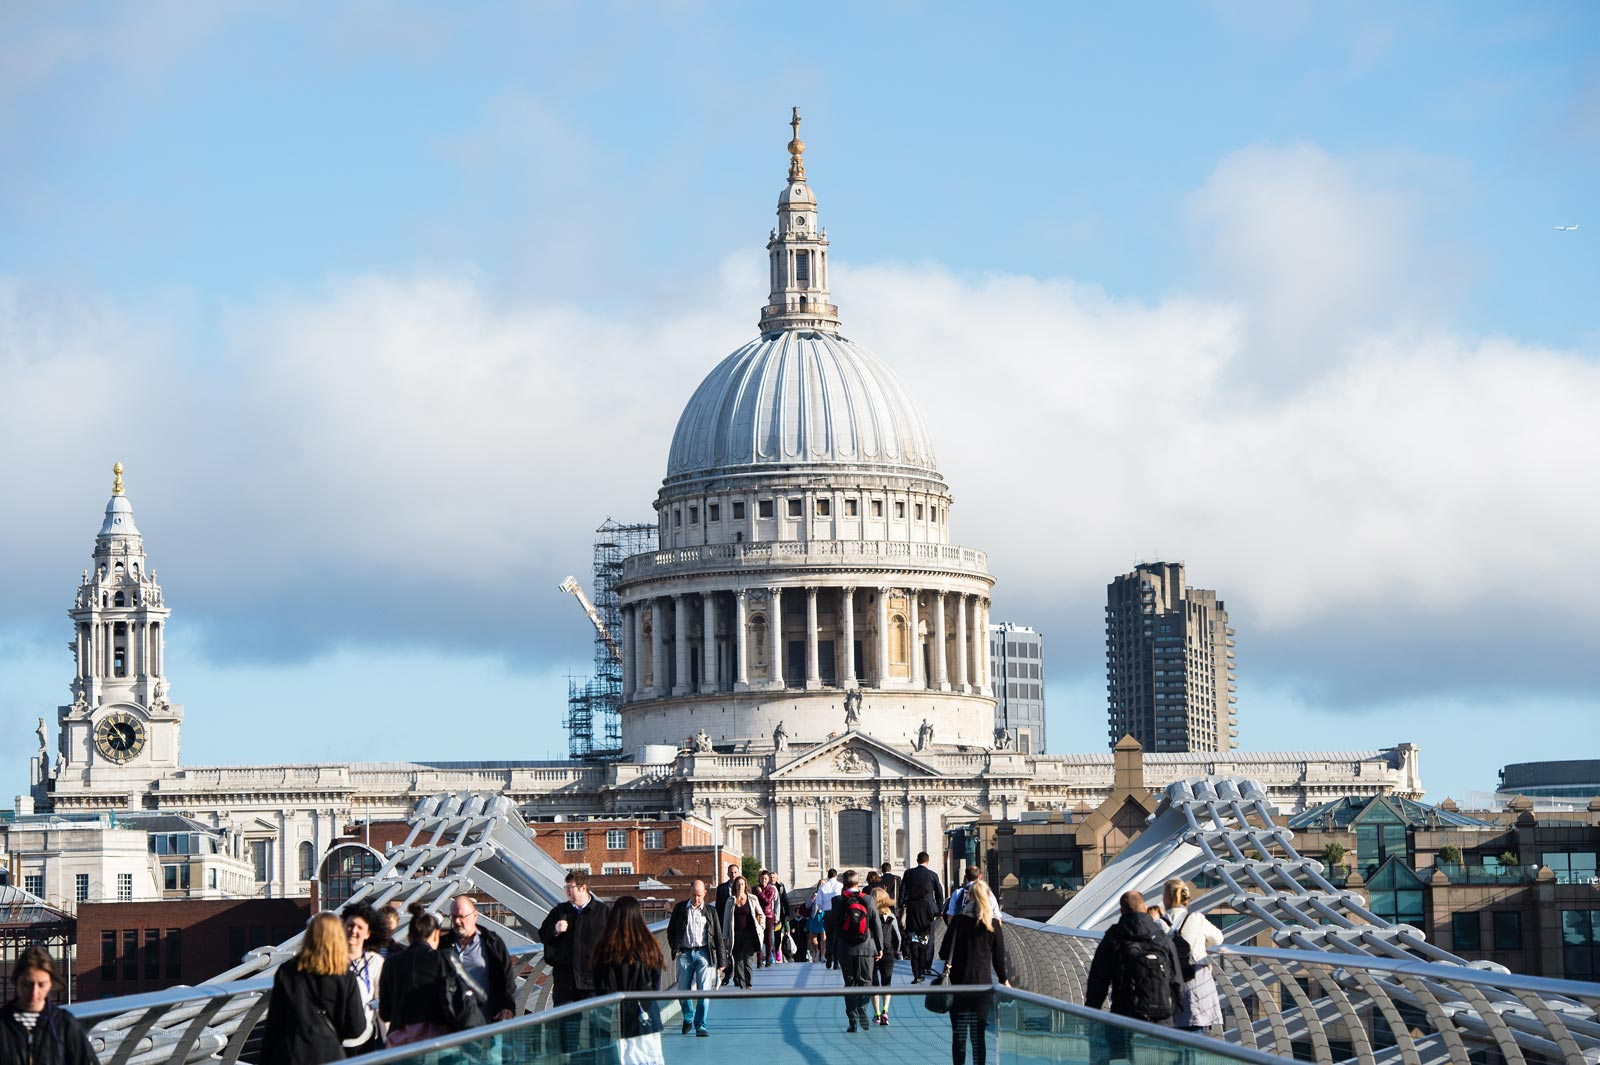 The Vintry & Mercer Hotel is a hort walk from St. Paul's Cathedral